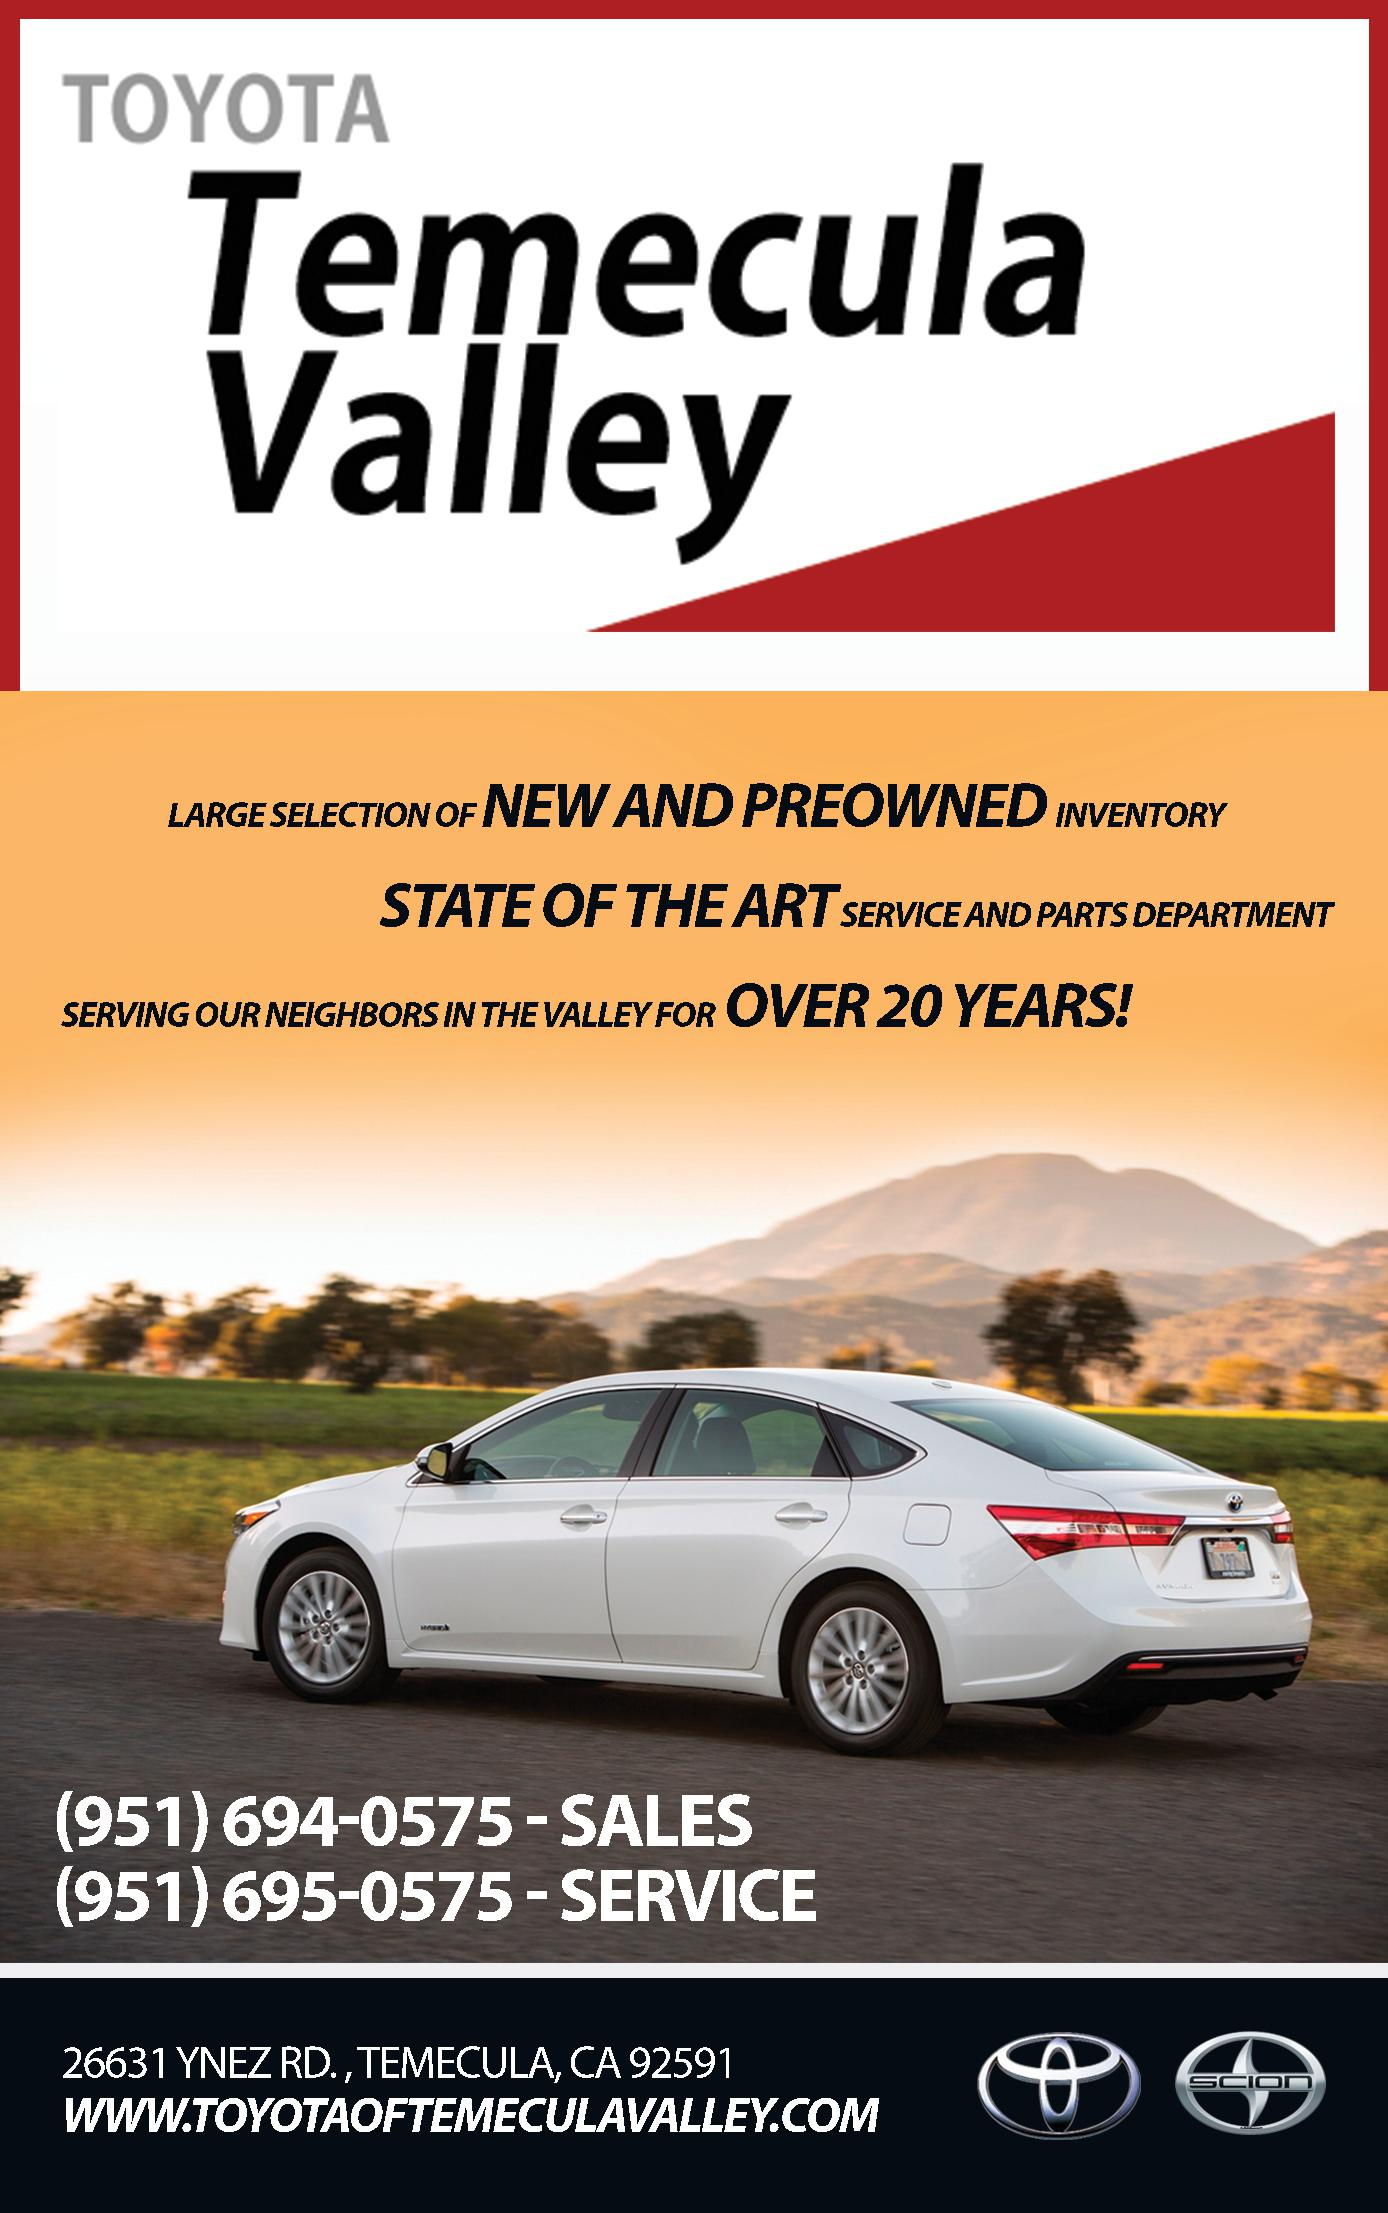 Toyota of Temecula Valley